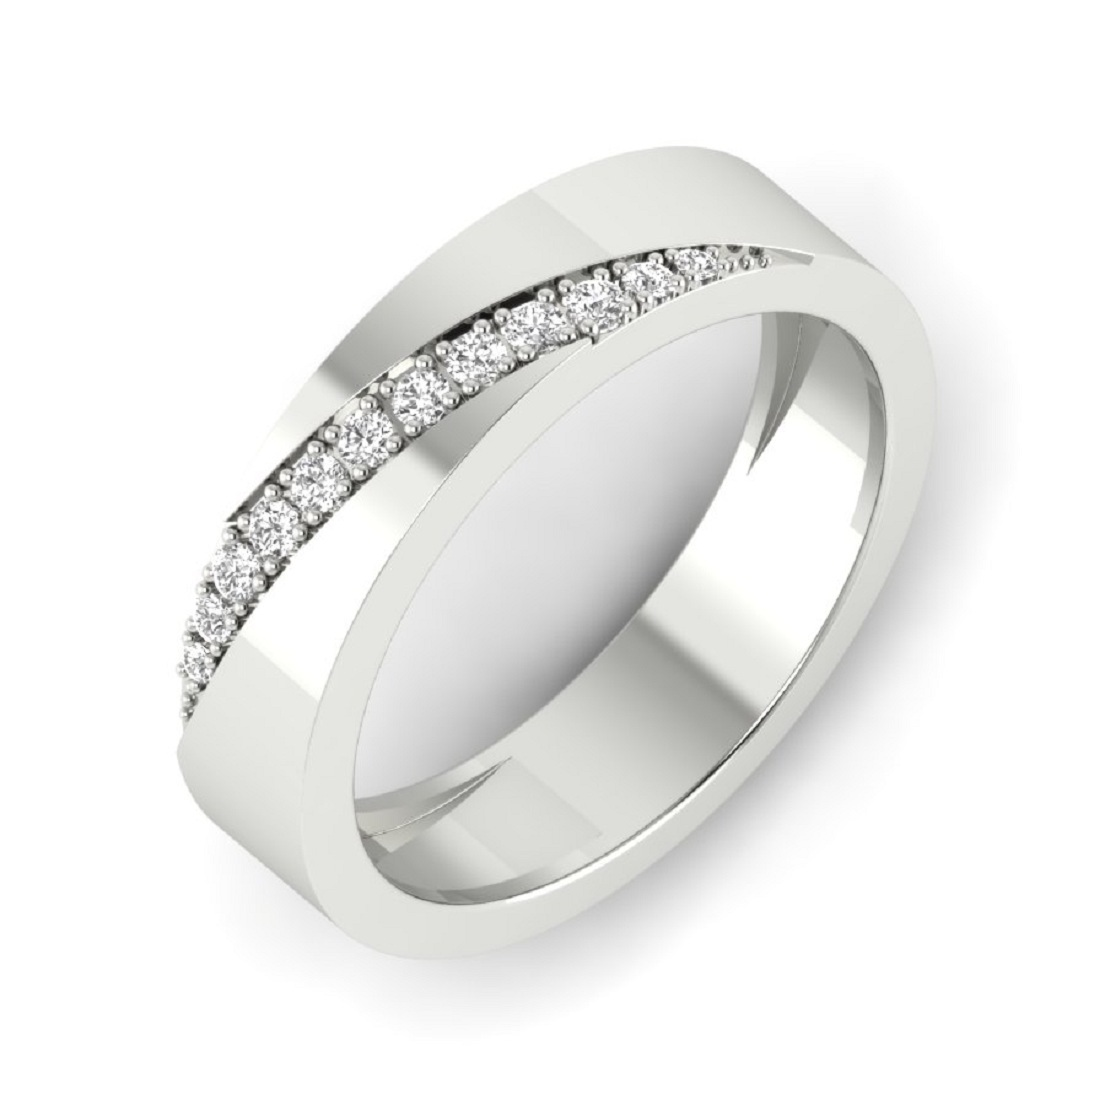 Silver Cocktail Ring For Female